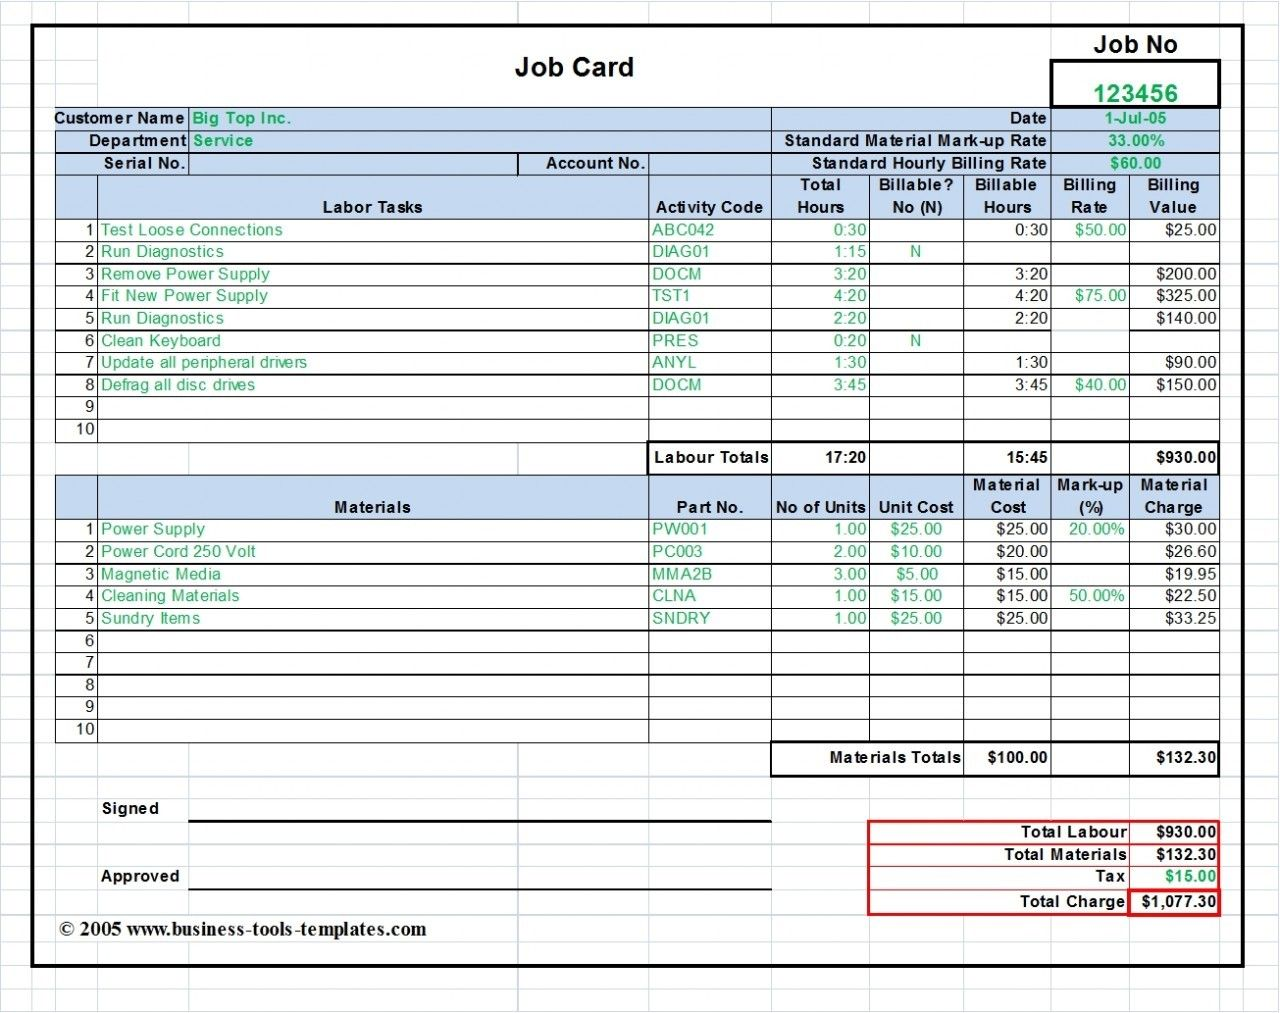 labor material cost estimator and job card template ms excel labor and material cost estimator job card template excel is ideal for the creation of job cards or the preparation of contractor estimating forms for a